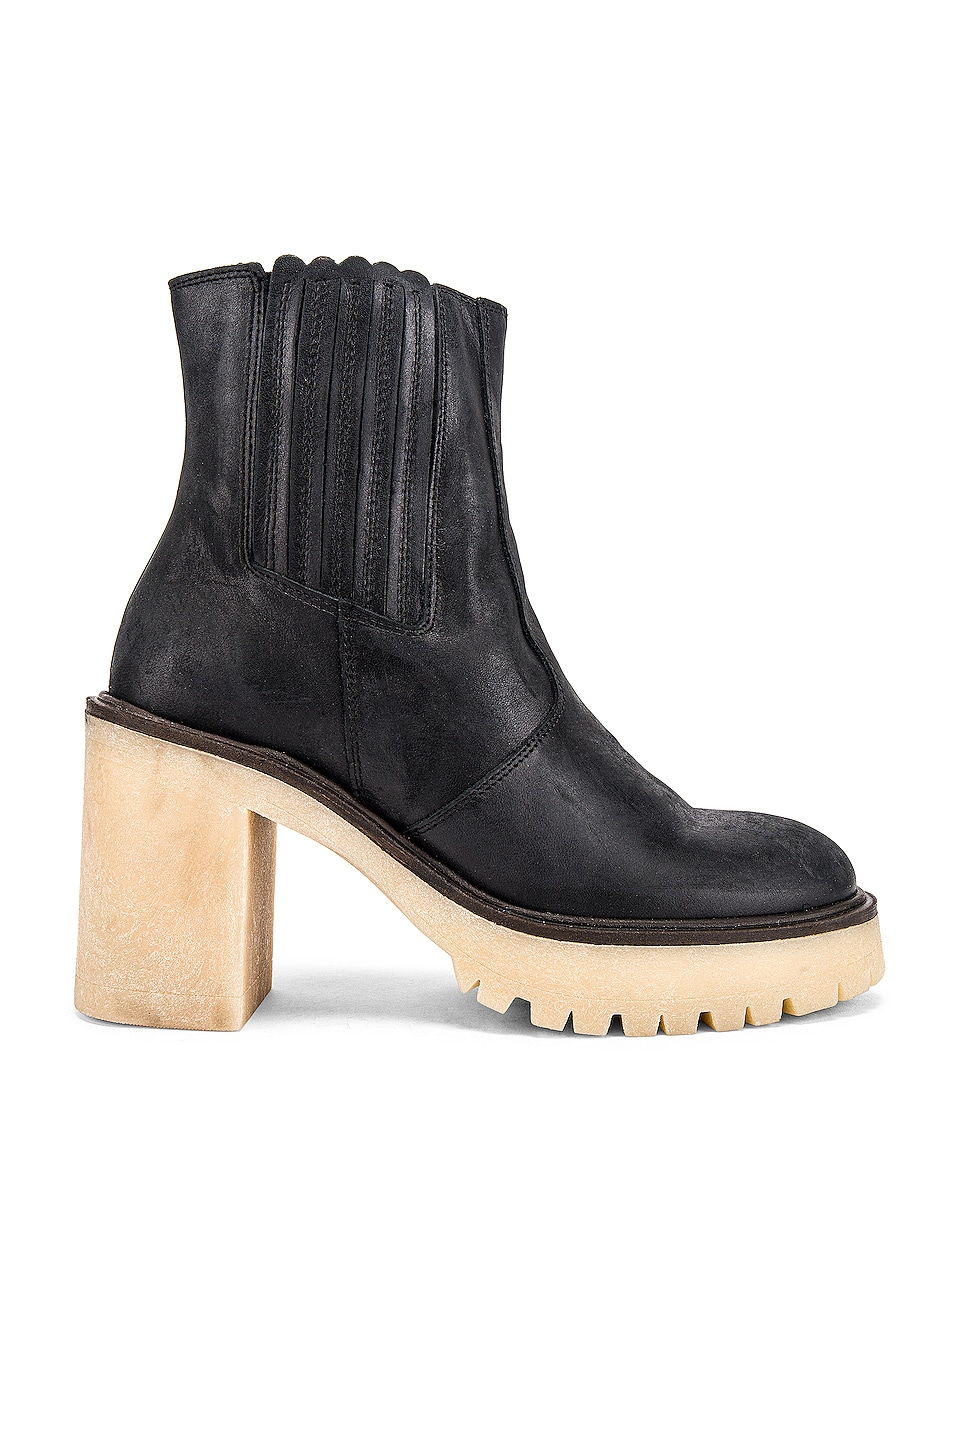 Free People James Chelsea Boots